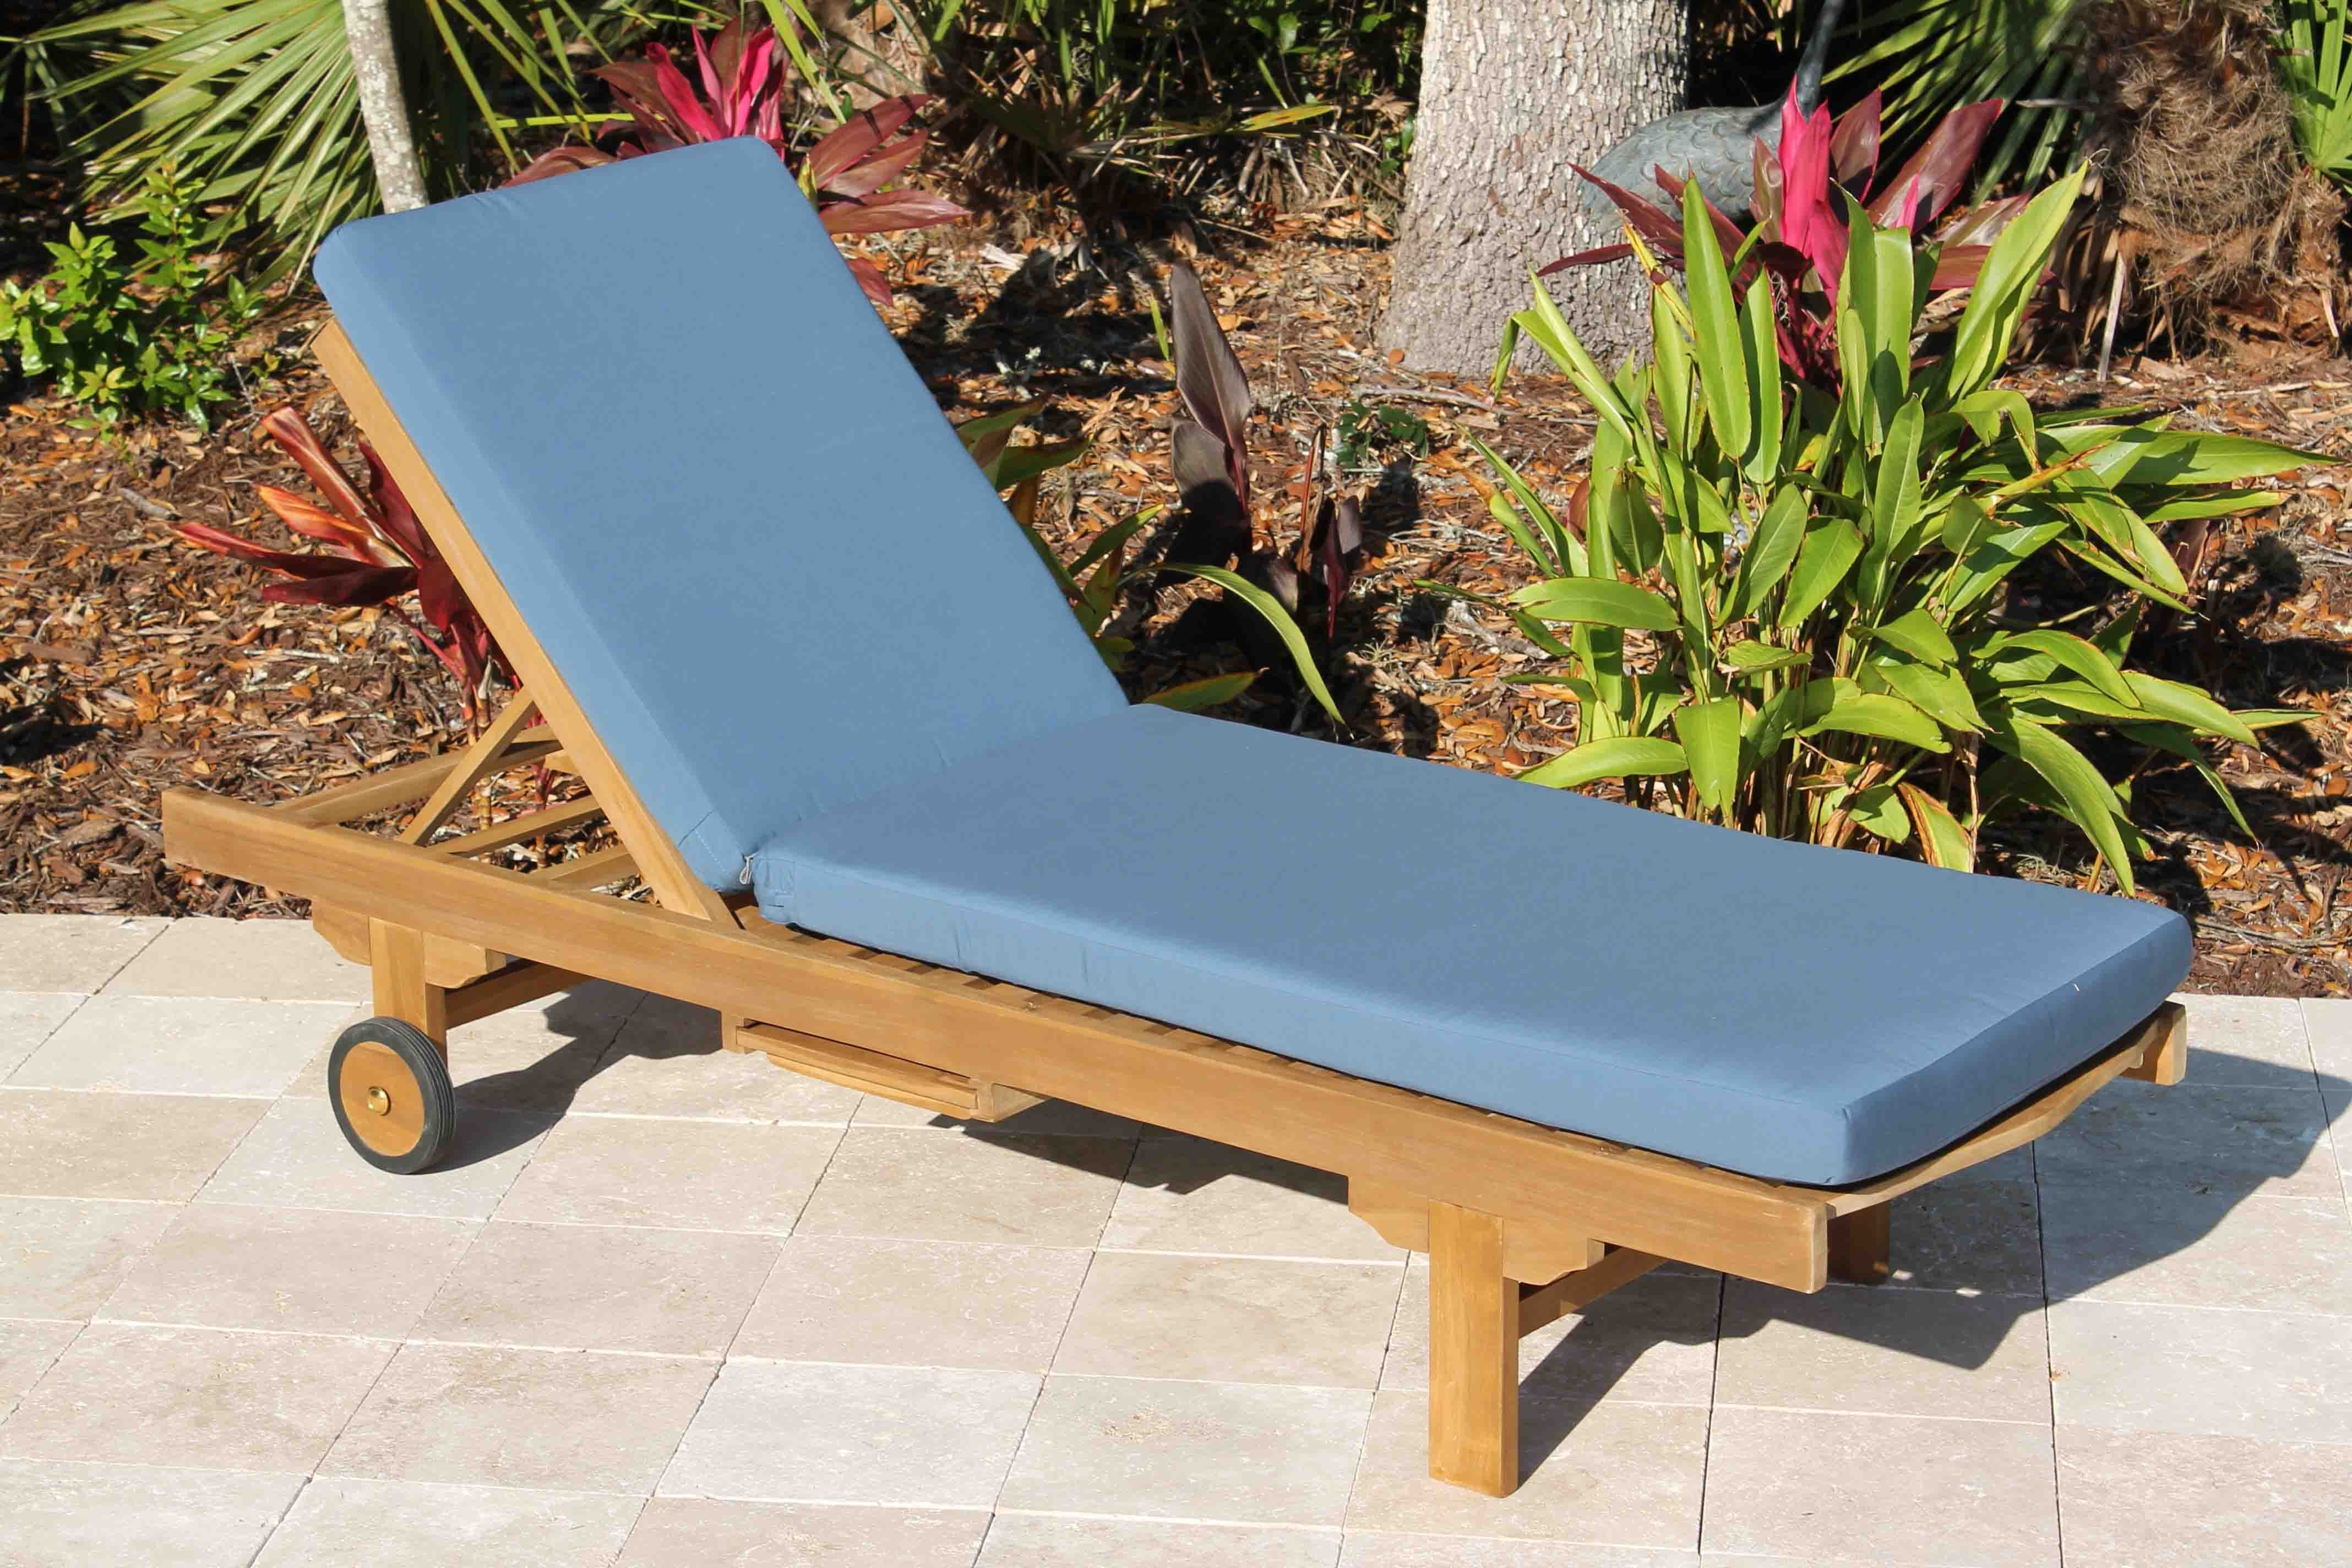 Oceanic Teak Furniture Intended For Sunbrella Chaise Lounge Cushions (View 7 of 15)